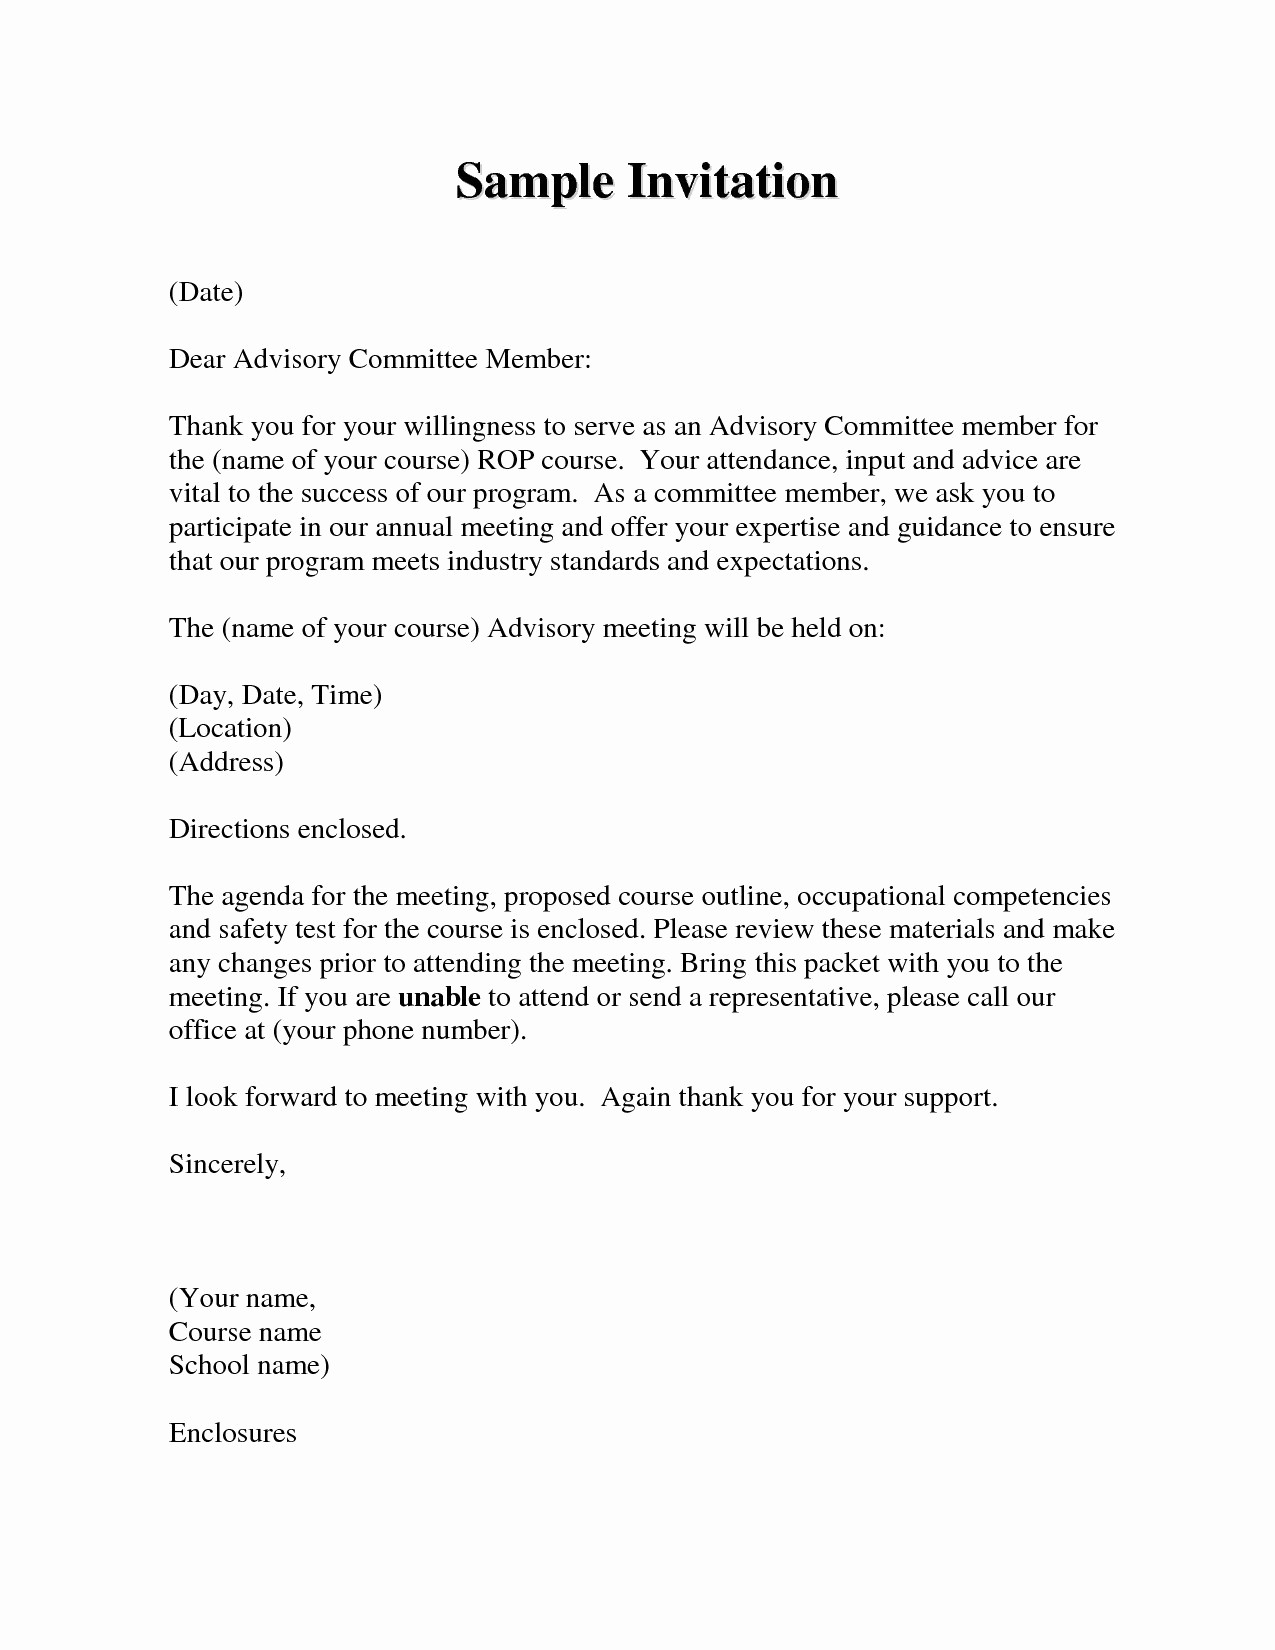 Set Up A Business Letter Awesome Set Up A Meeting Email Sample Austinroofing